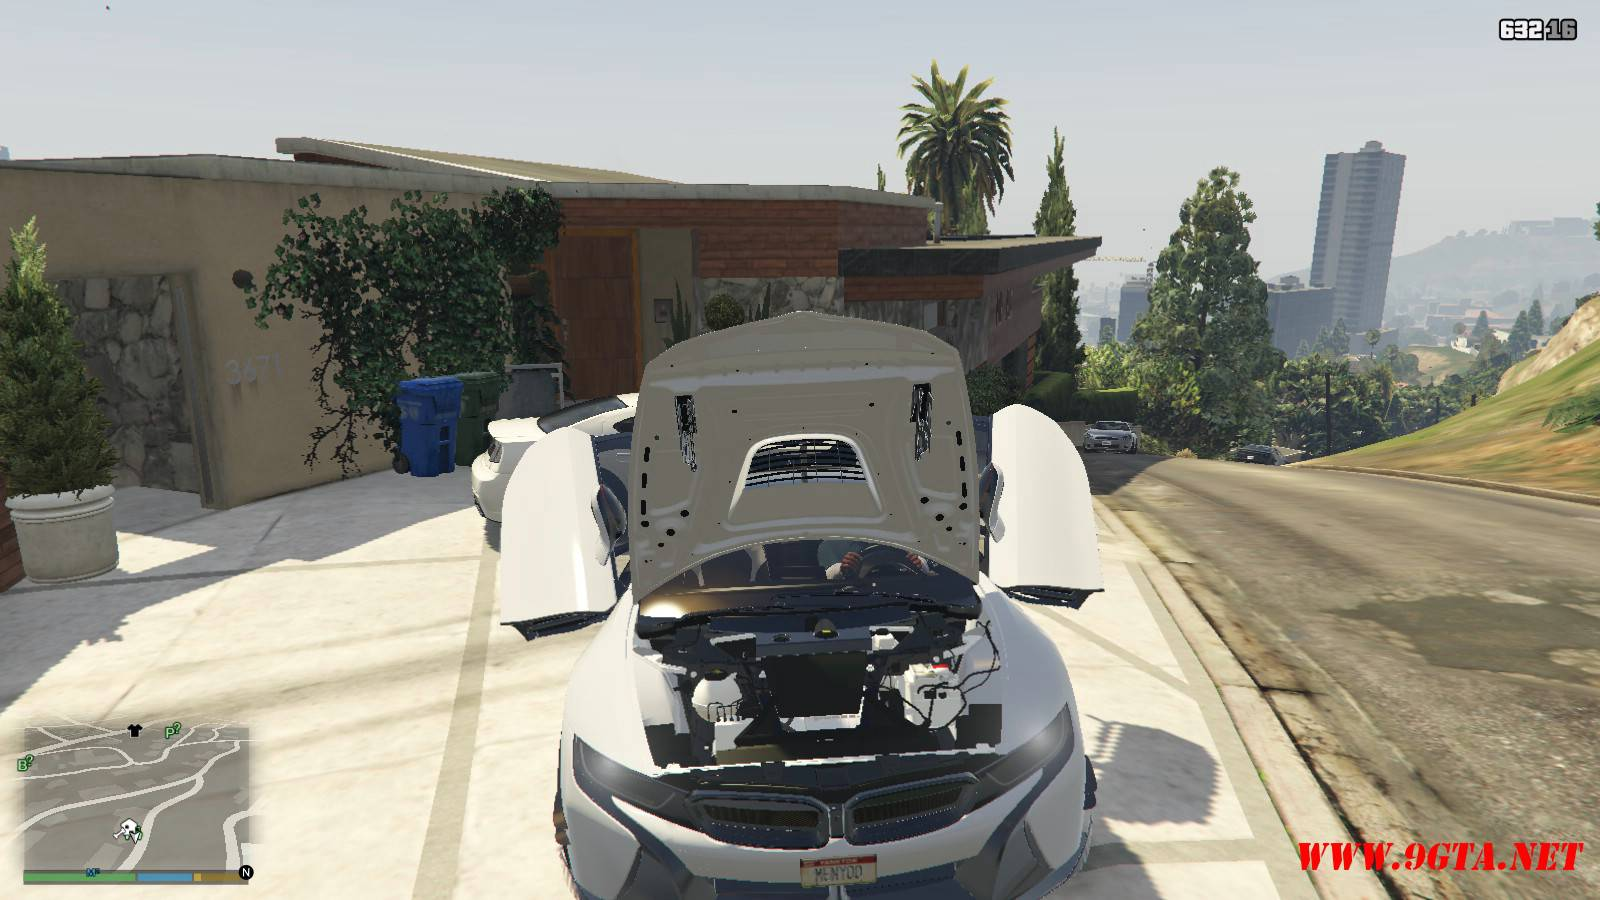 BMW i8 AC Schinitzer ACS8 Mod For GTA5 (13)